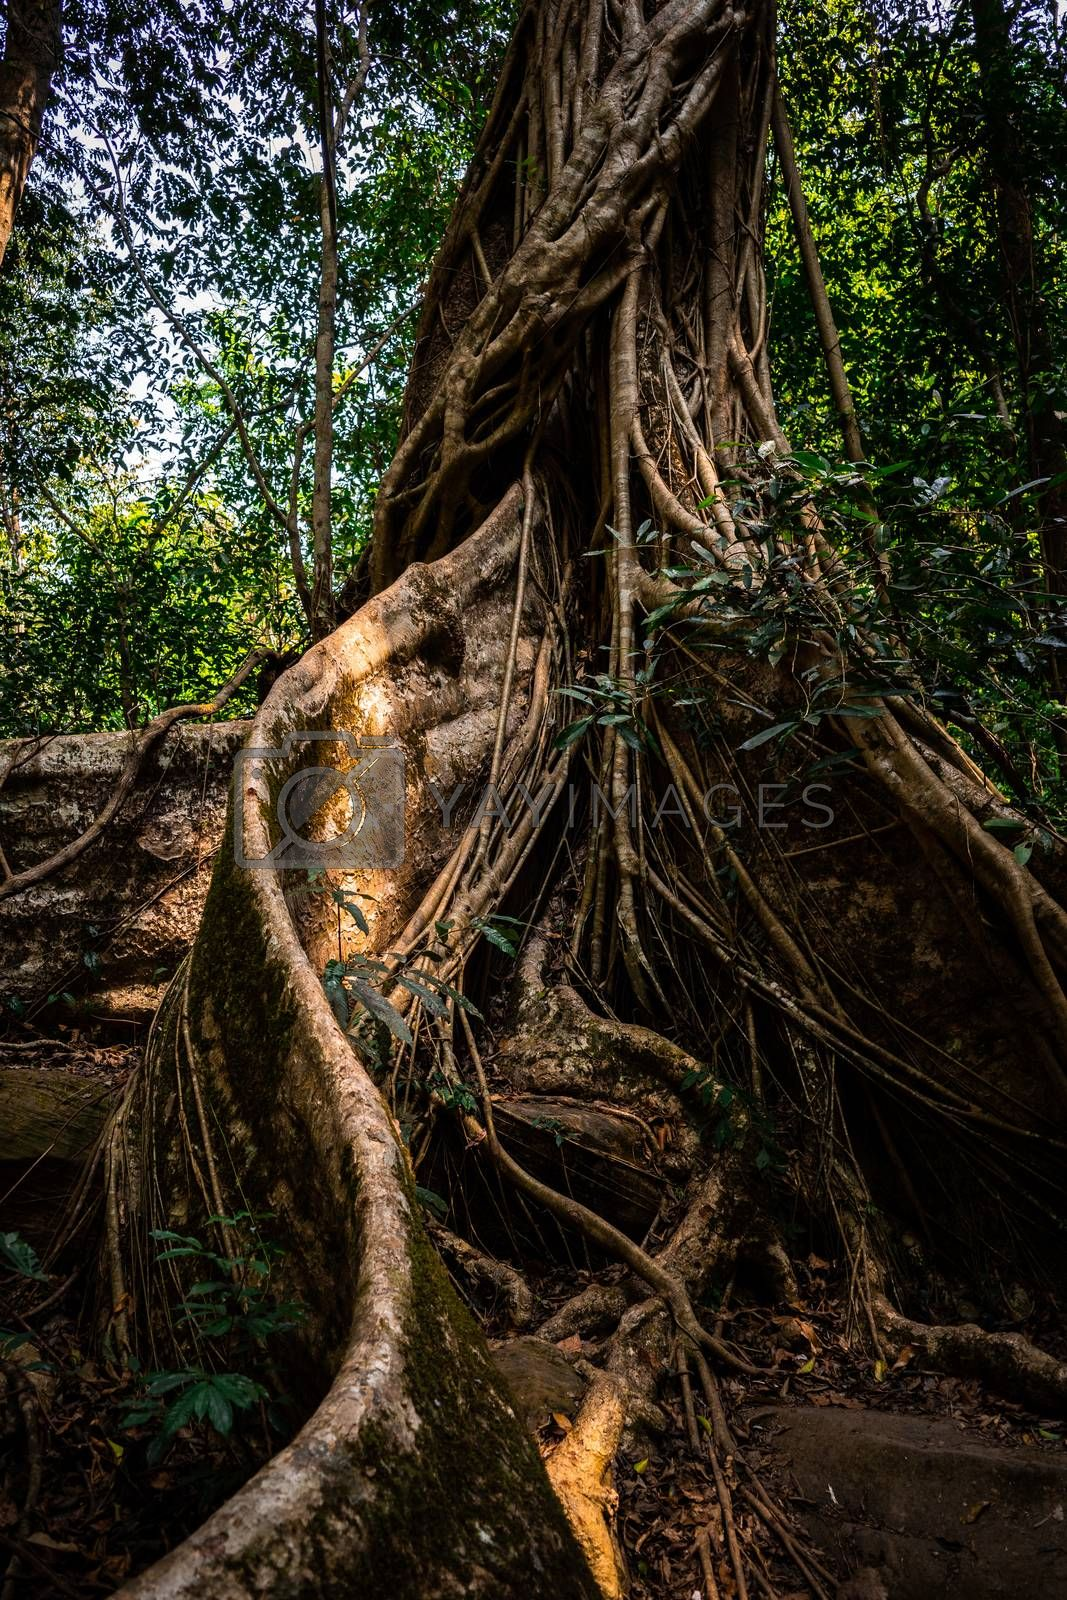 Half body of big old tree trunk inside deep tropical rainforest covered by vine, climber and big root appear from ground, Khao Yai national park, Thailand.